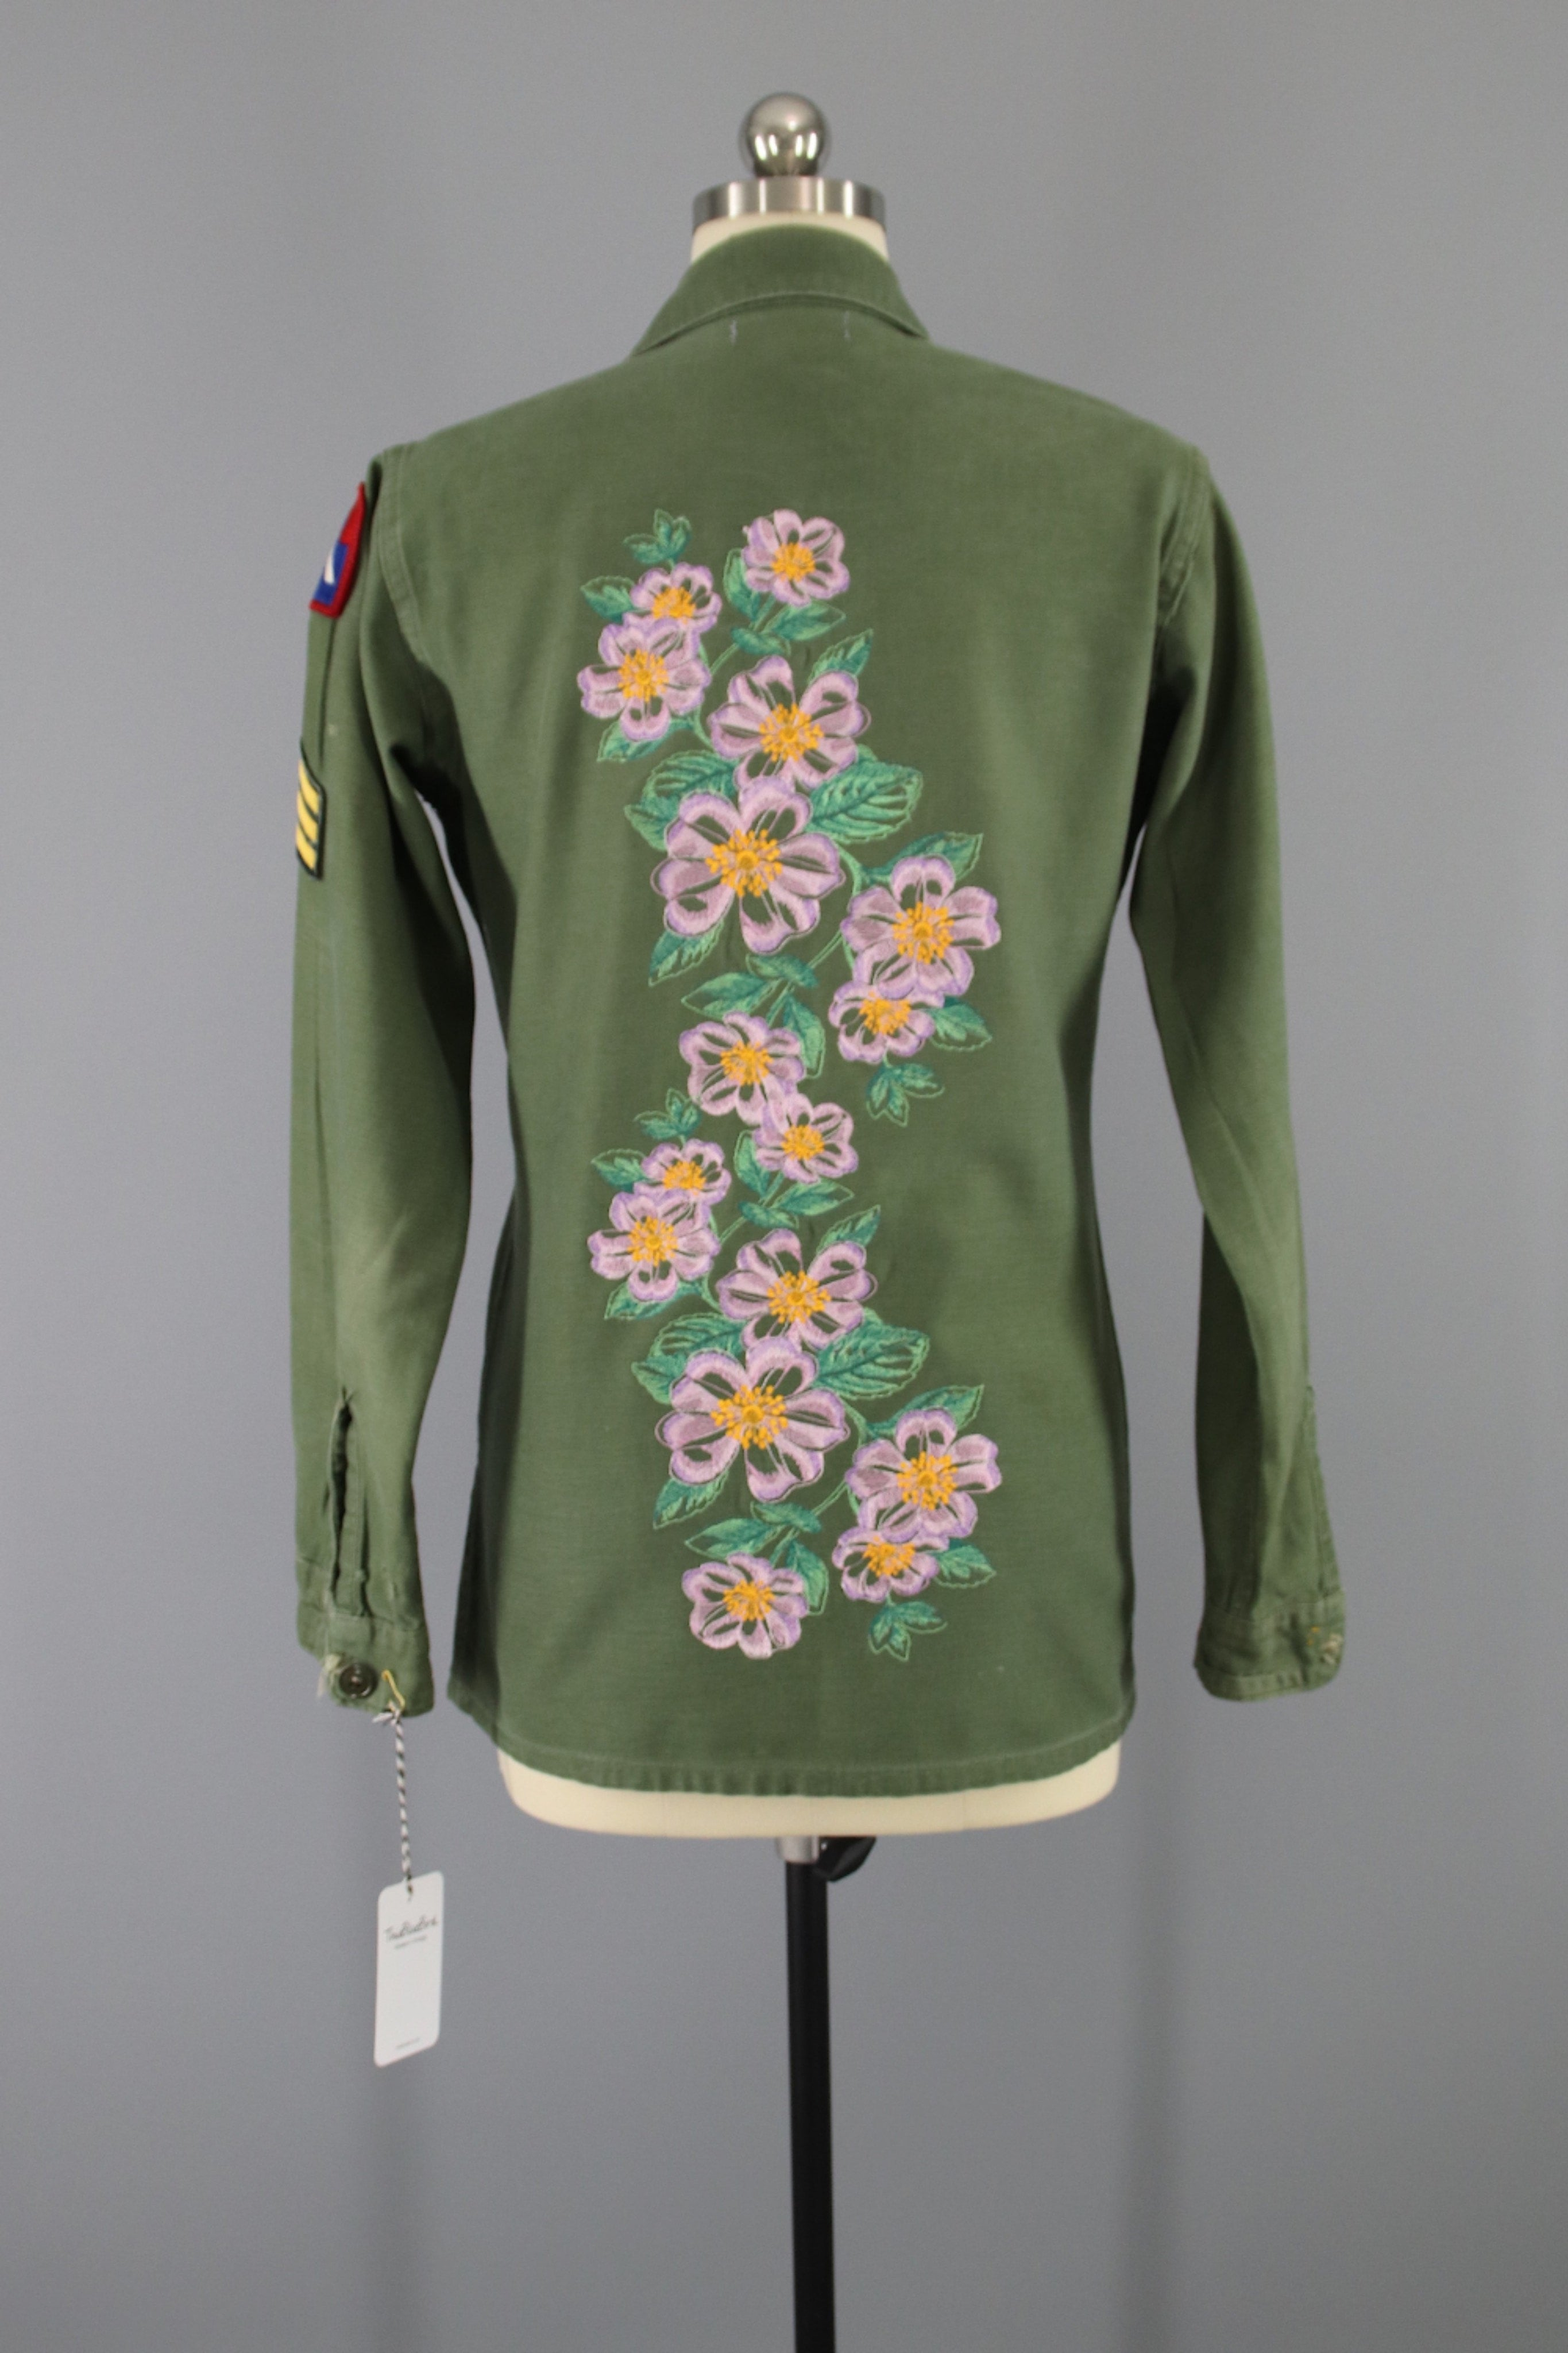 1960s US Army Vintage Embroidered Camo Shirt / Floral Embroidery Tops ThisBlueBird